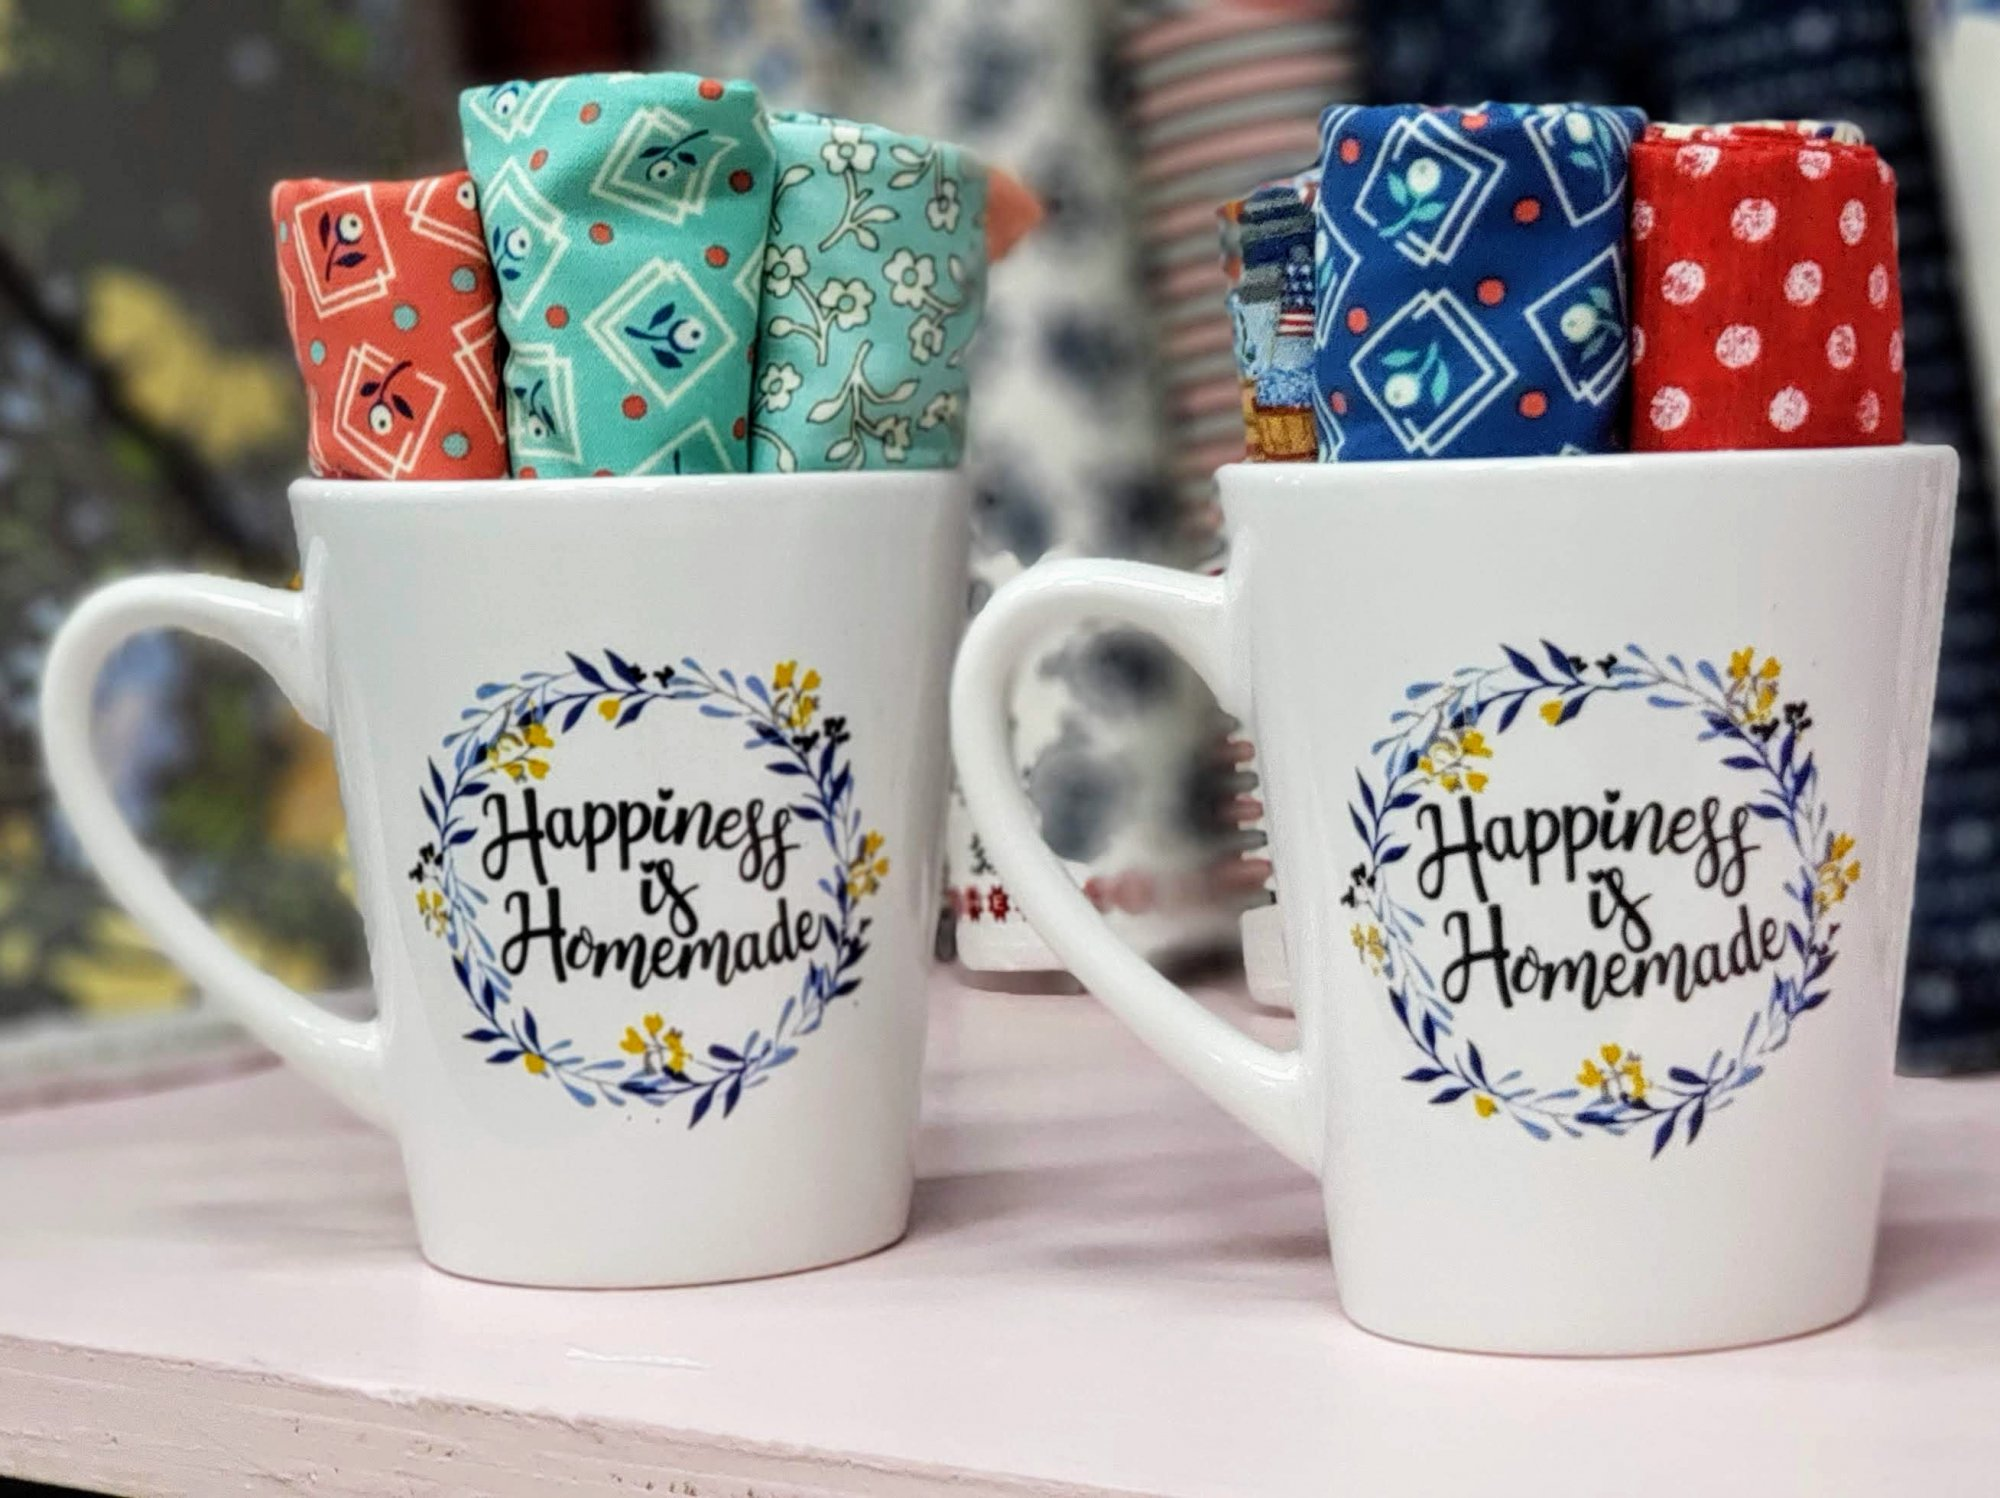 Cup of Happiness is Homemade Fat Quarters